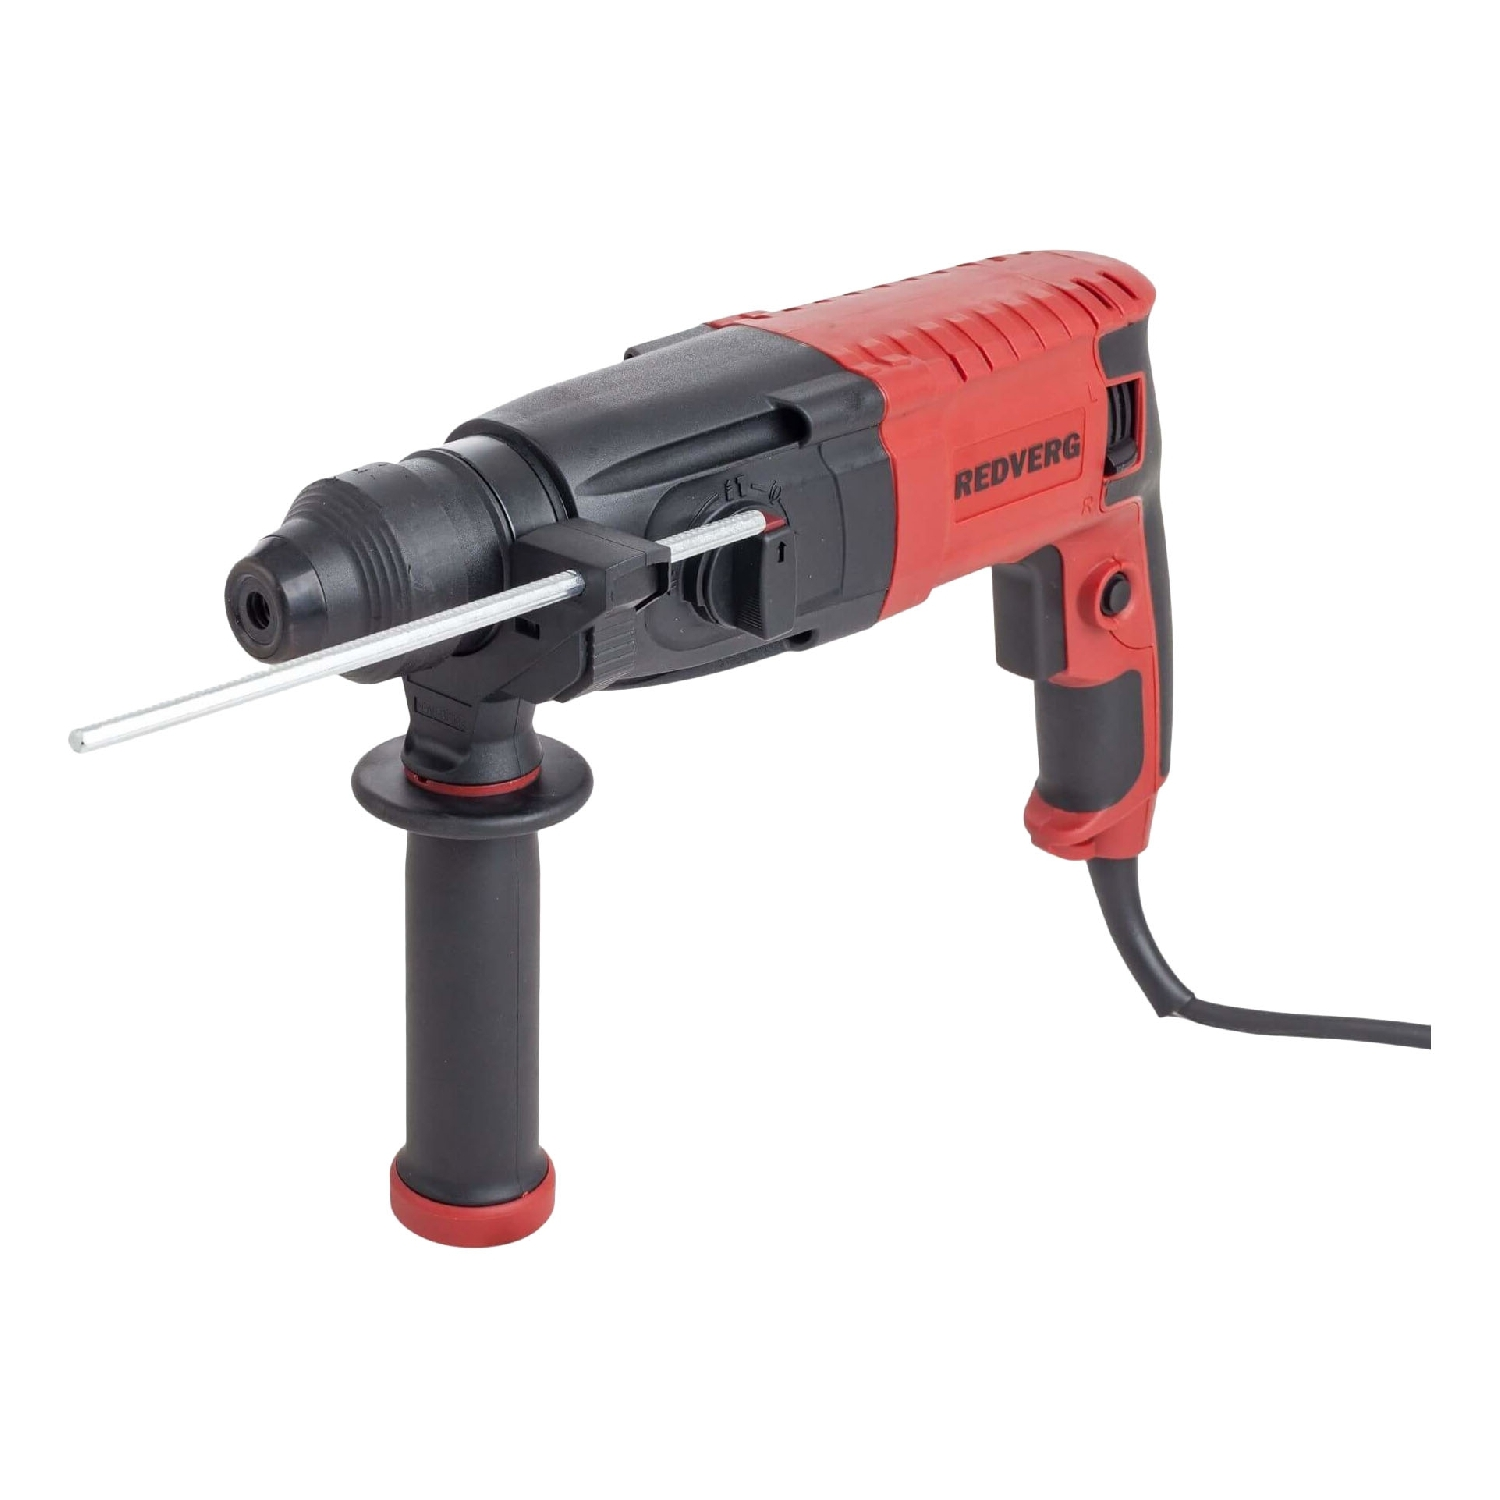 Hammer Drill electric RedVerg RD-RH850 (power 850 W, SDS + Chuck, energy impact 2,5 J) hammer drill electric redverg rd rh1500 power 1500 w drilling in concrete to 36mm антивибрационная system